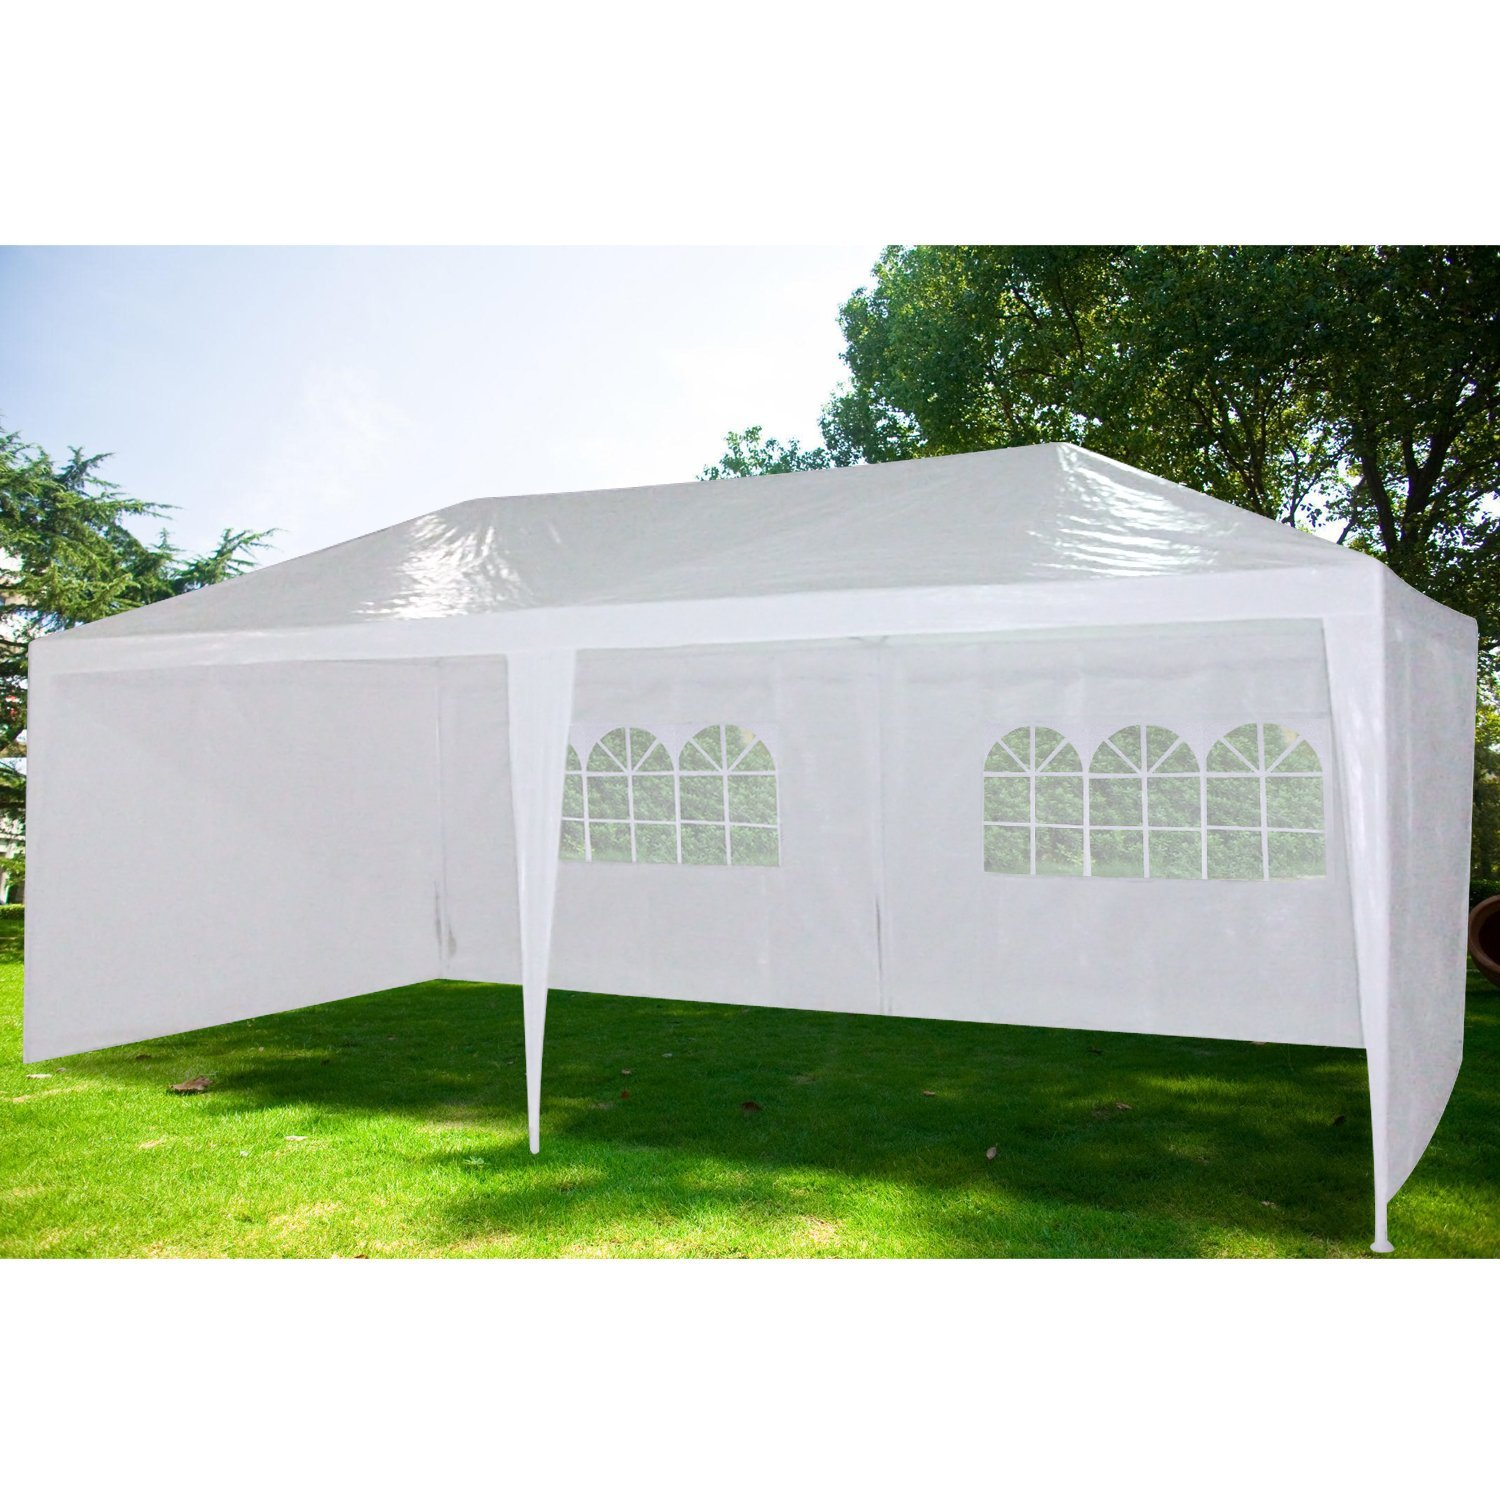 Quictent 10'x20'Heavy duty Outdoor Canopy Party Wedding Tent Gazebo Pavilion 4 Walls